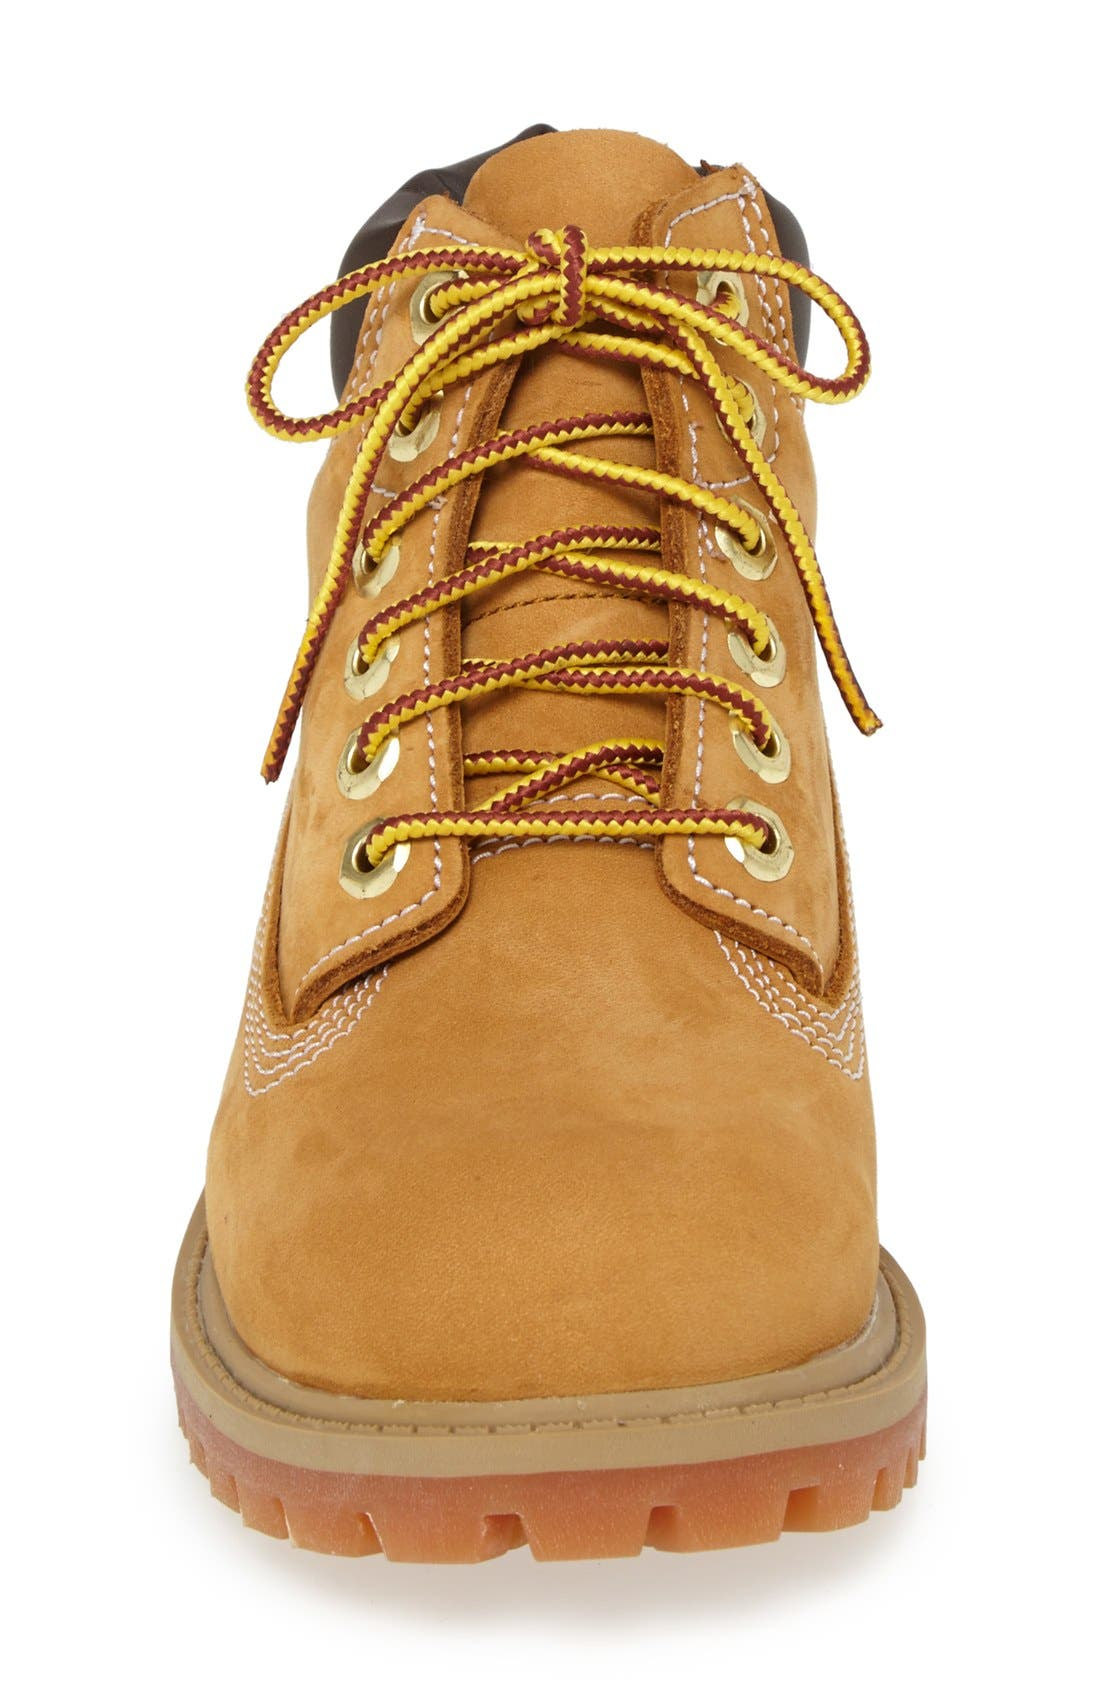 '6 Inch Premium' Waterproof Boot,                             Alternate thumbnail 3, color,                             Wheat Nubuck